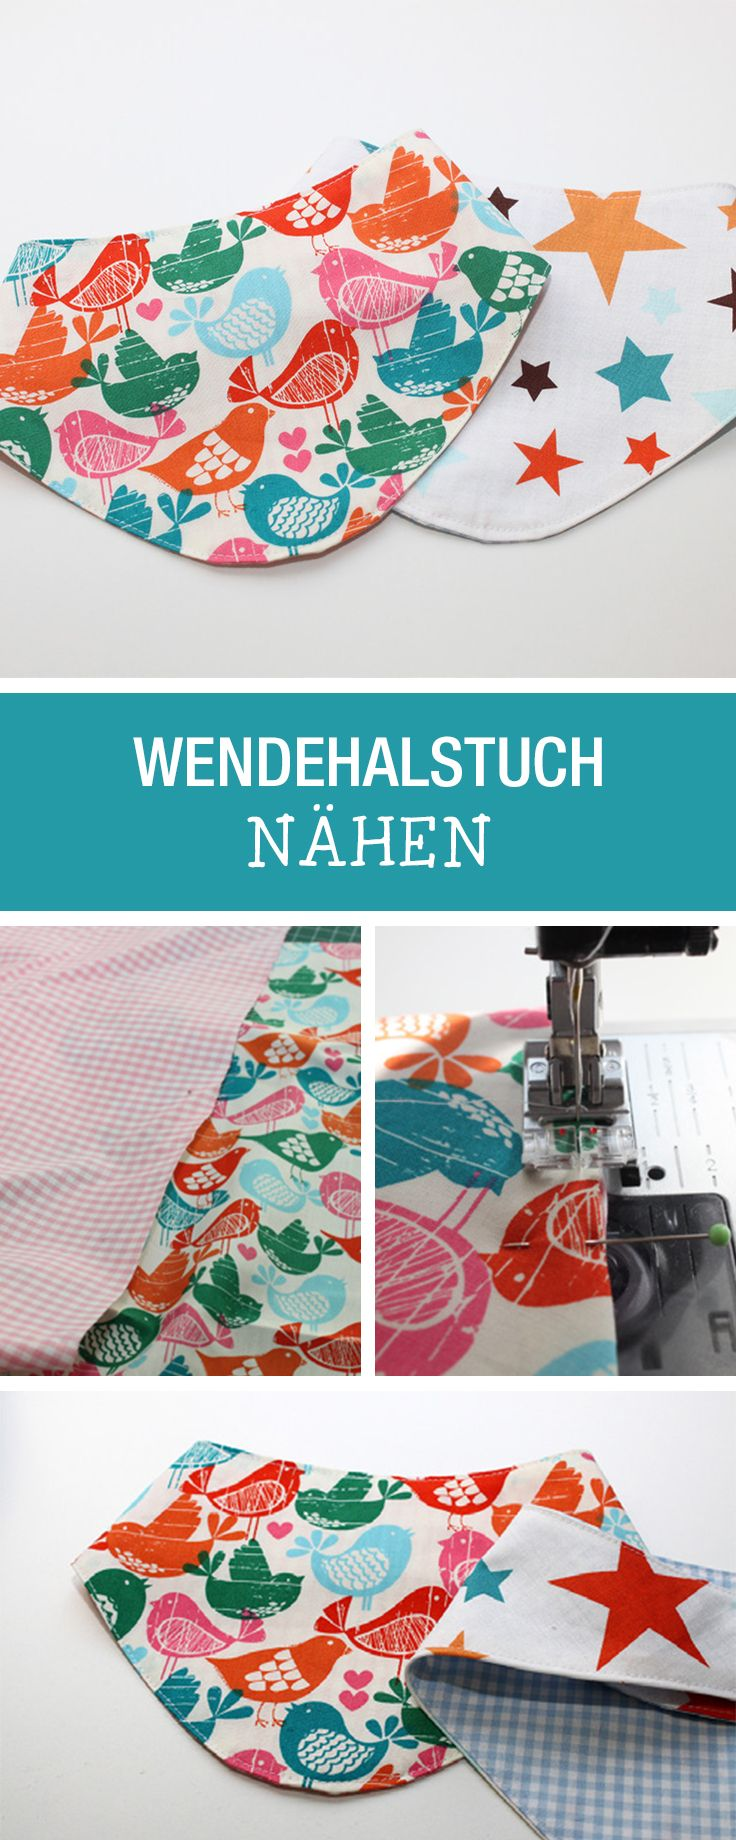 Nähanleitung für ein niedliches Wendehalstuch / diy sewing tutorial: how to sew a scarf for kids via DaWanda.com